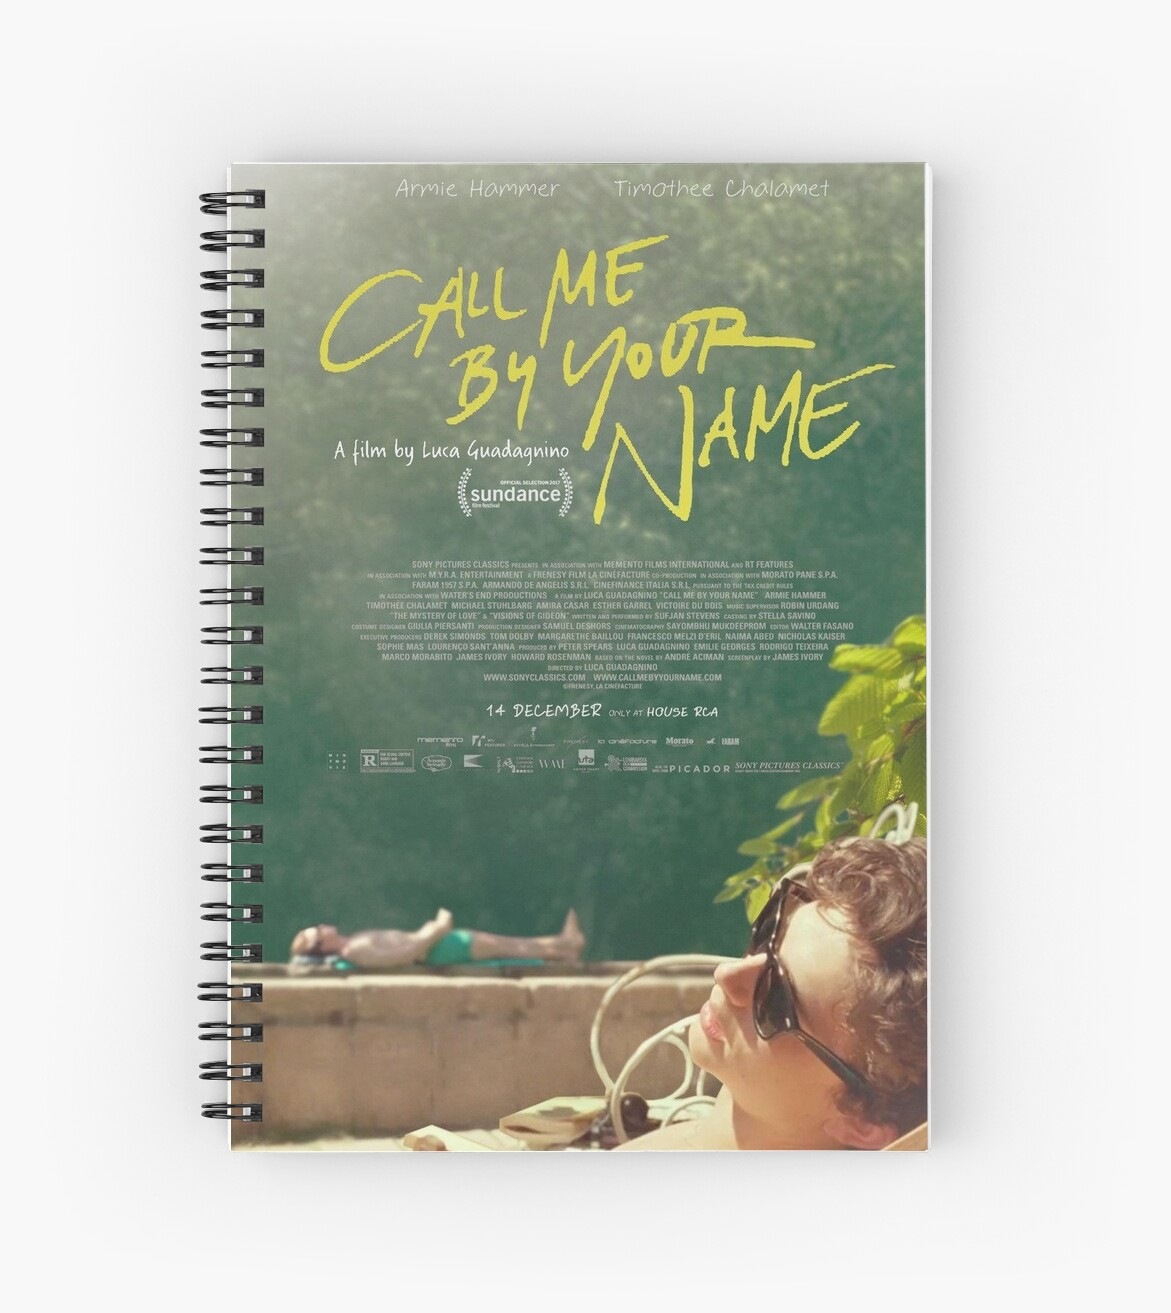 Call Me By Your Name Movie Poster Spiral Notebooks By Robertboy